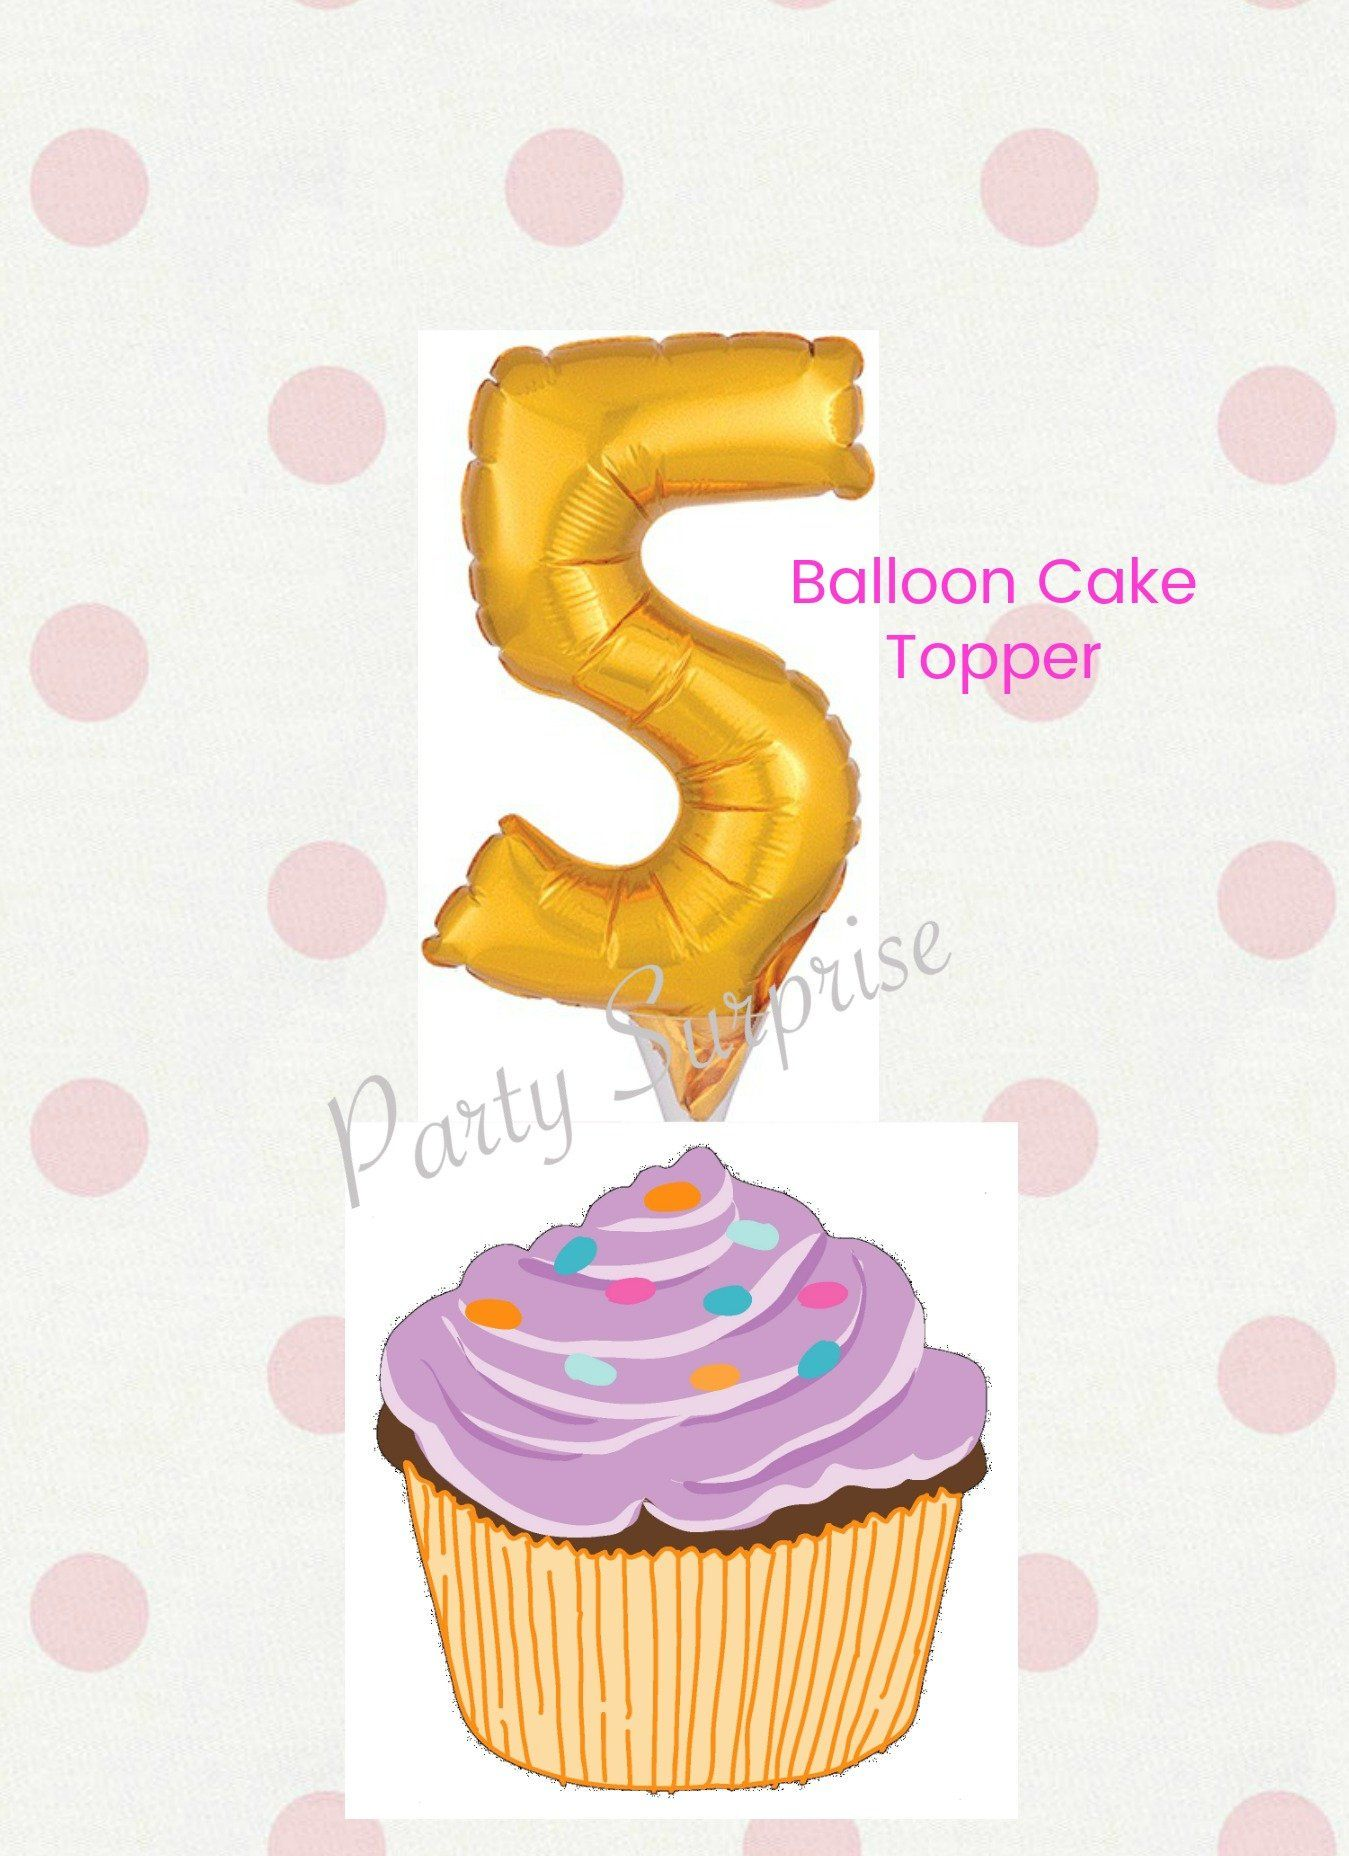 5th Birthday Balloon Cake Topper Girl Boy Cupcake Pick Number 5 Party Anniversary By PartySurprise